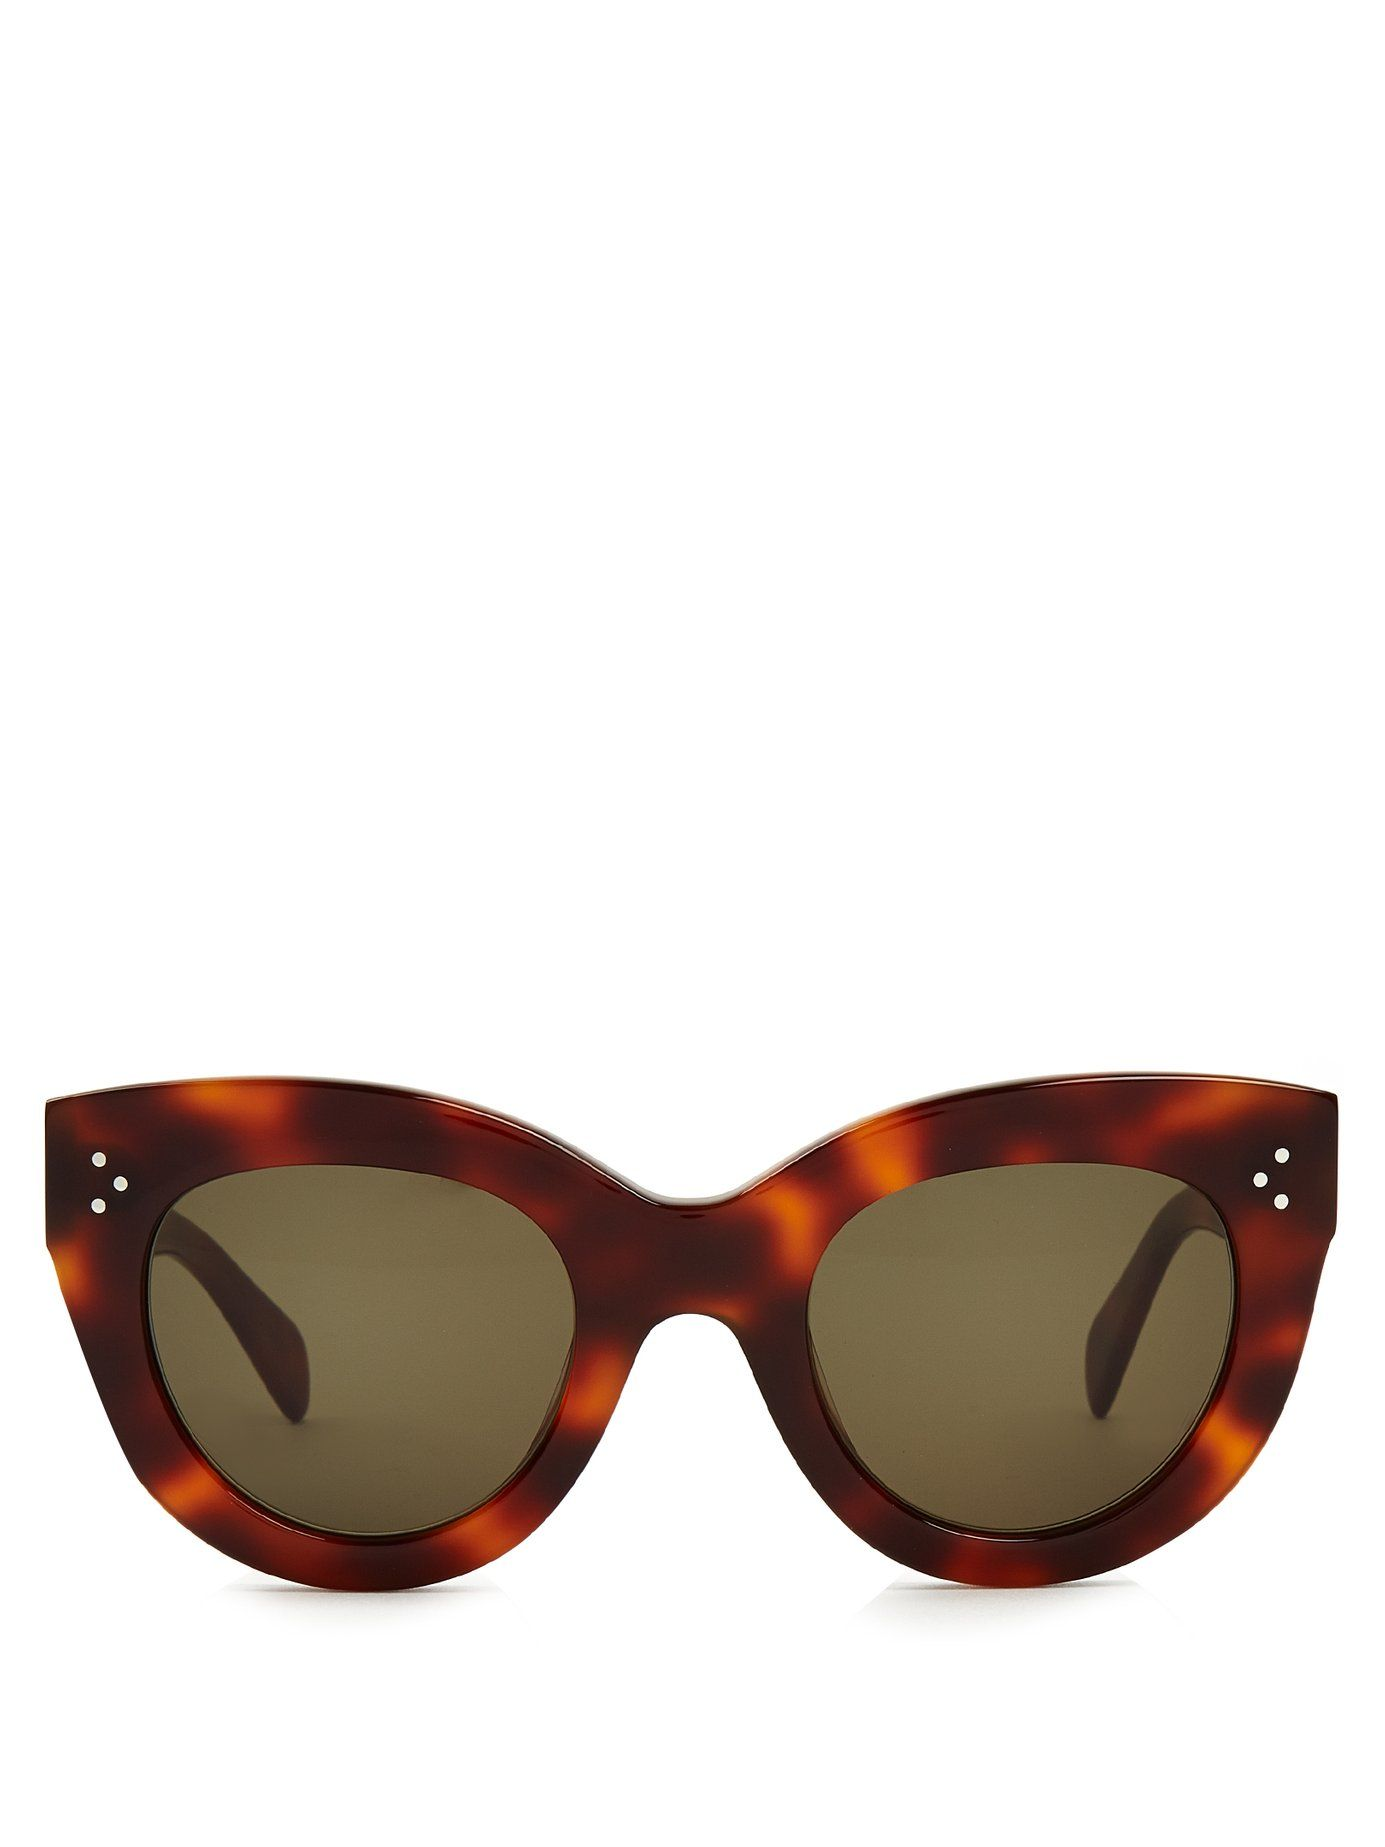 b38192f91 Click here to buy Céline Eyewear Caty cat-eye acetate sunglasses at  MATCHESFASHION.COM